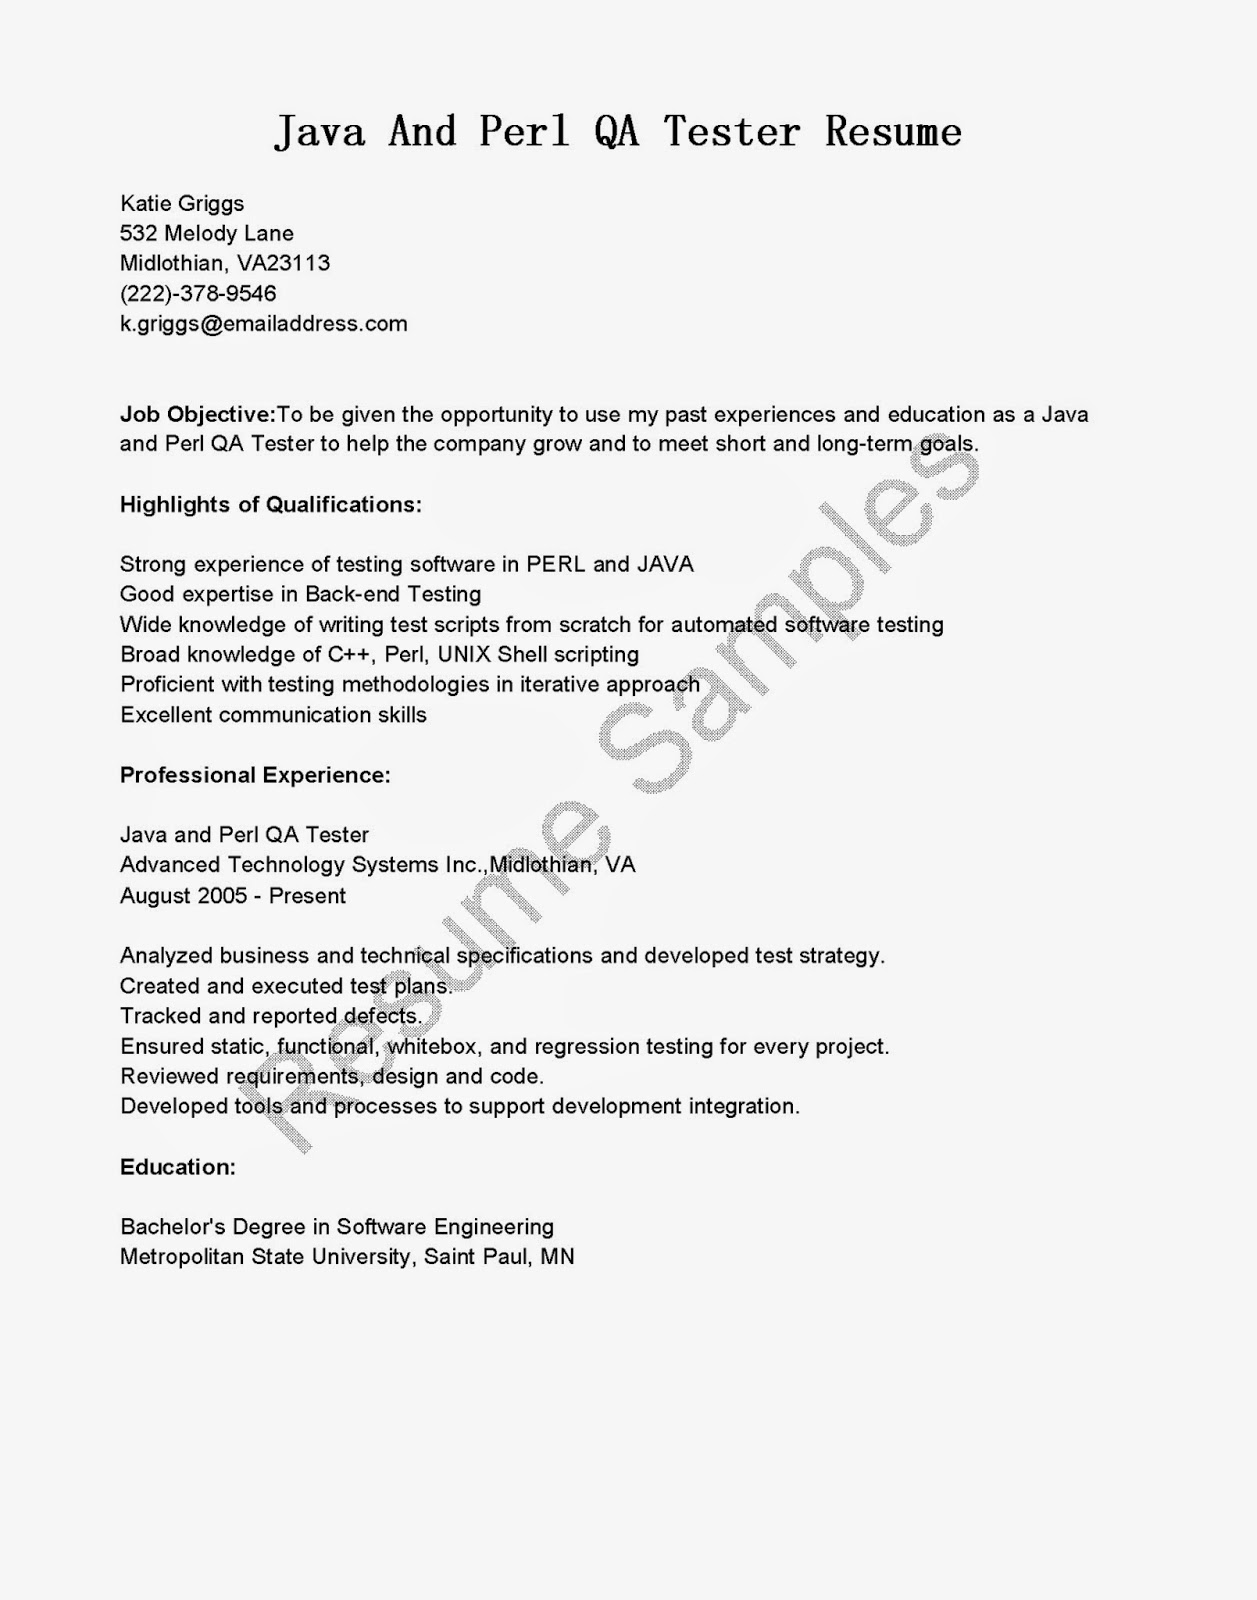 resume samples  java and perl qa tester resume sample